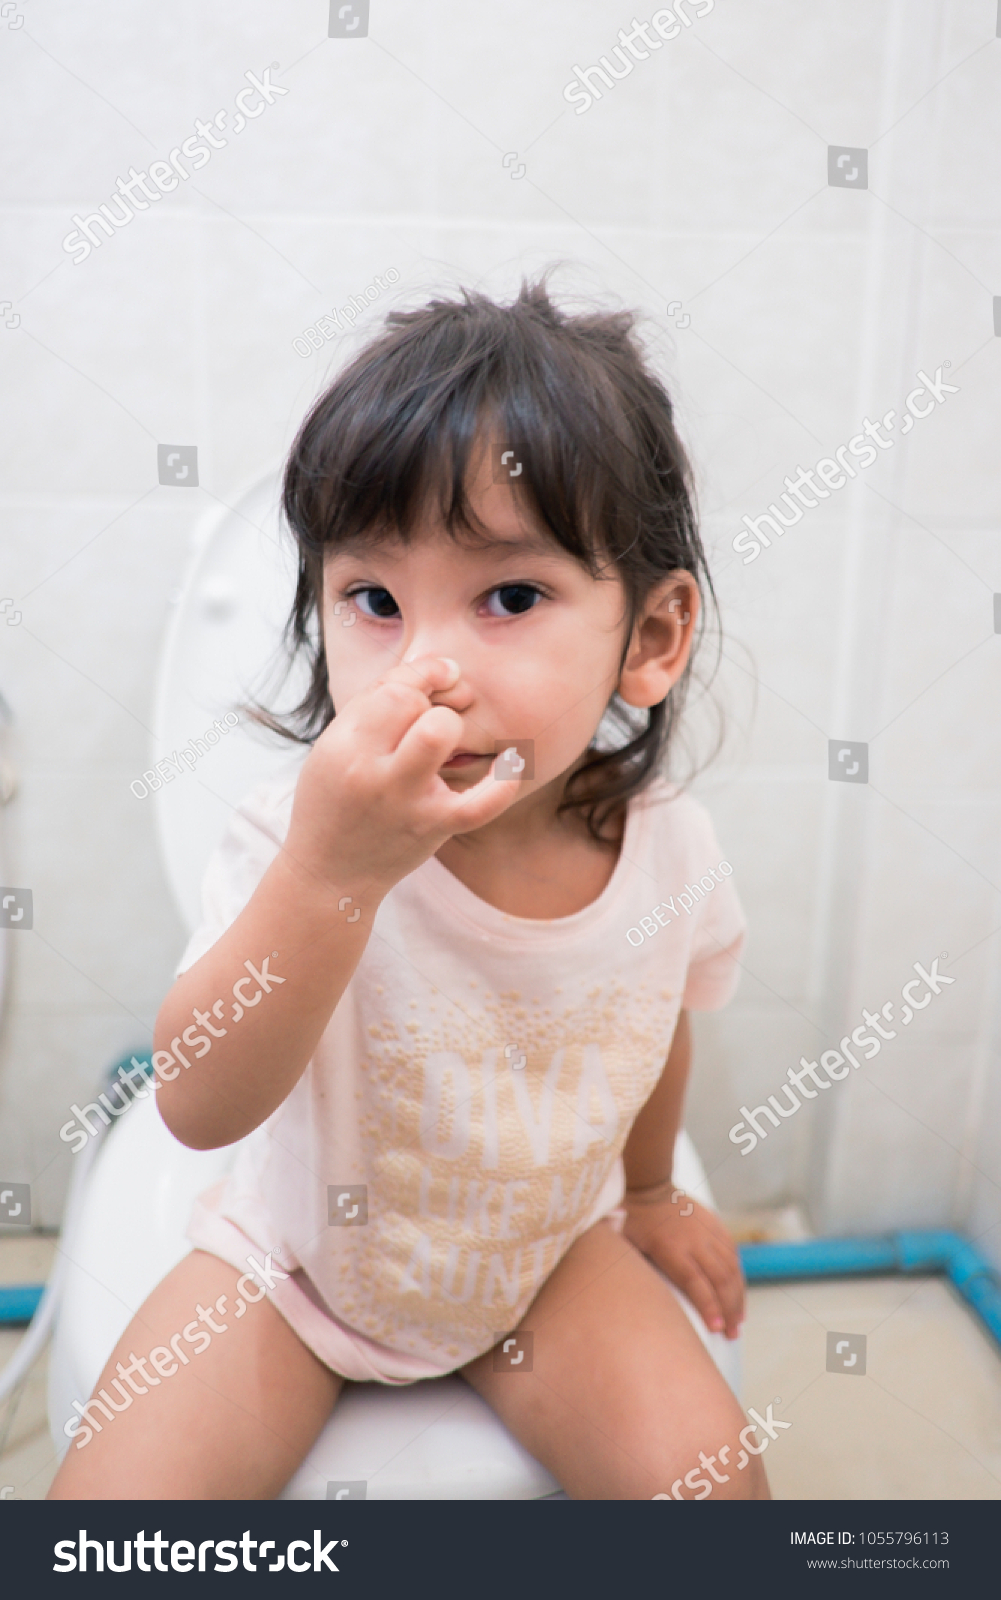 Little asian girl sitting on a toilet,Training child concept.Little girl  poo and pee in white toilet. - Image